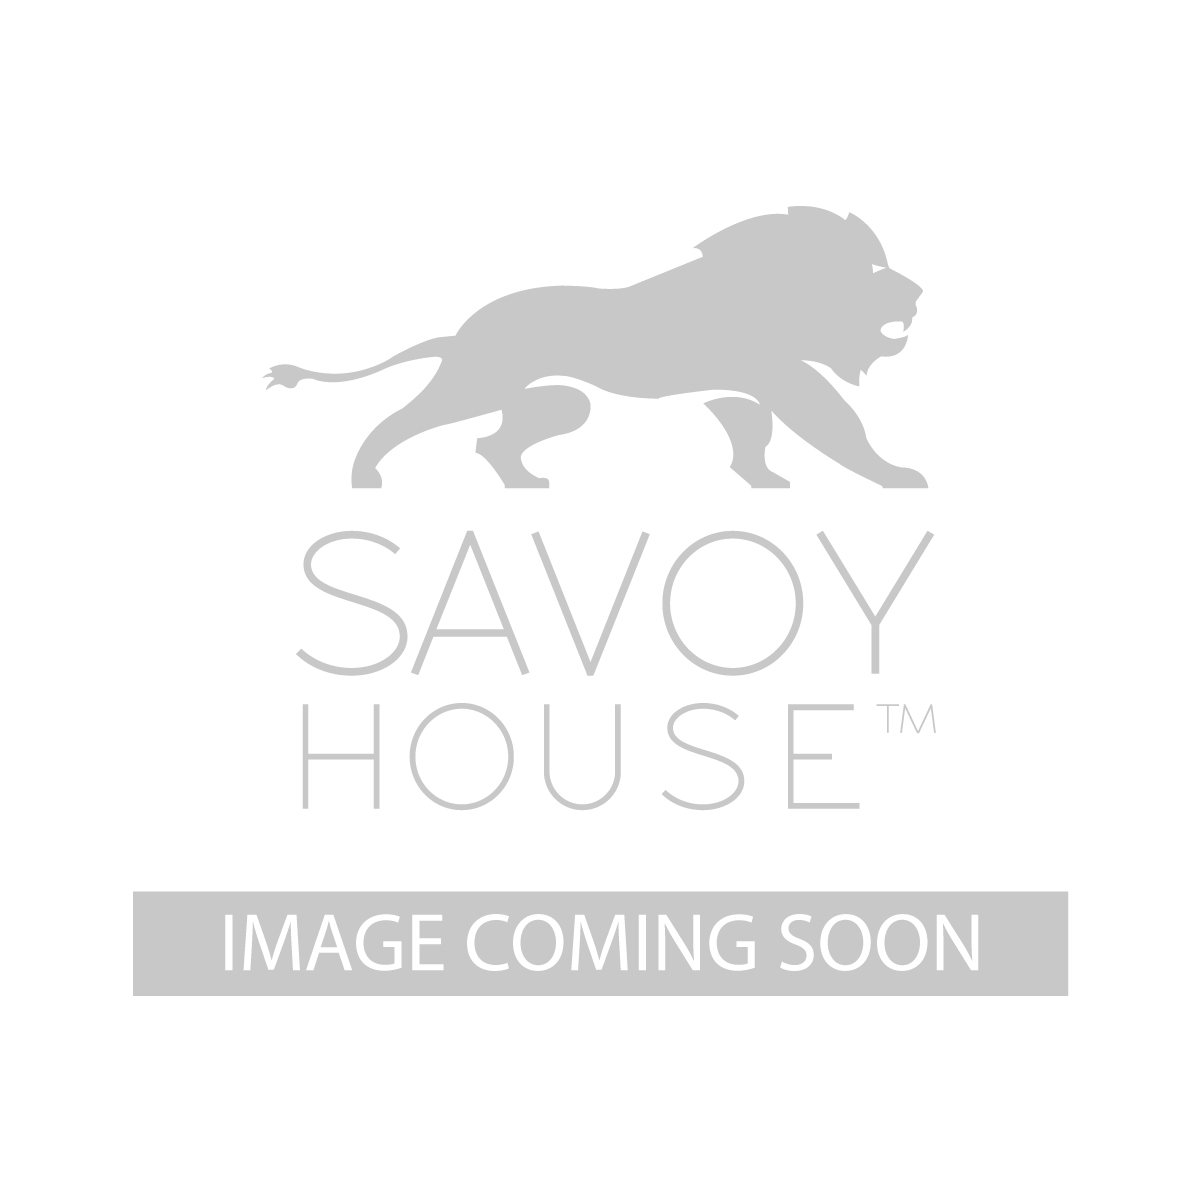 1 4505 4 8 6 Light Mini Chandelier By Savoy House